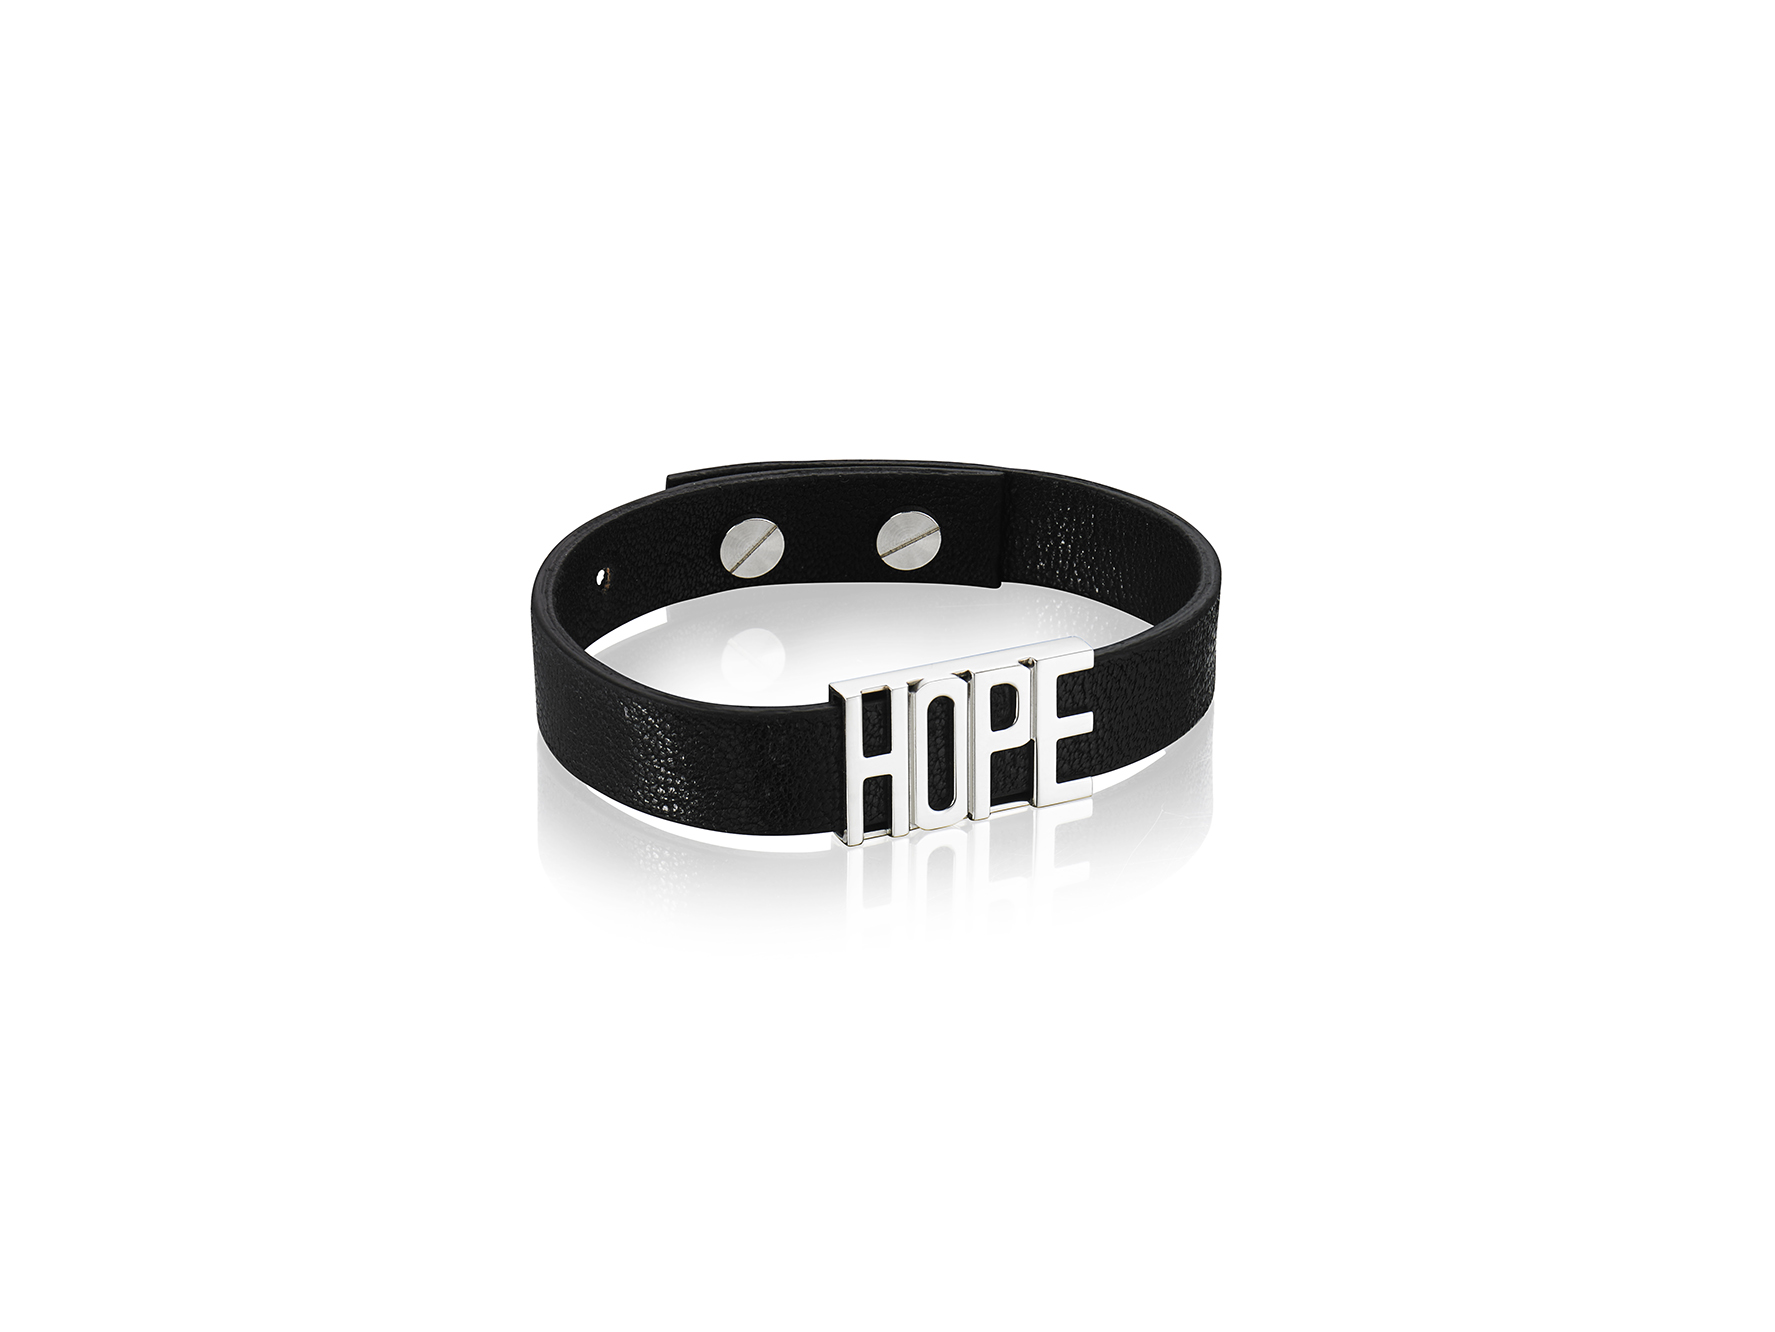 : - Hope leather bracelet